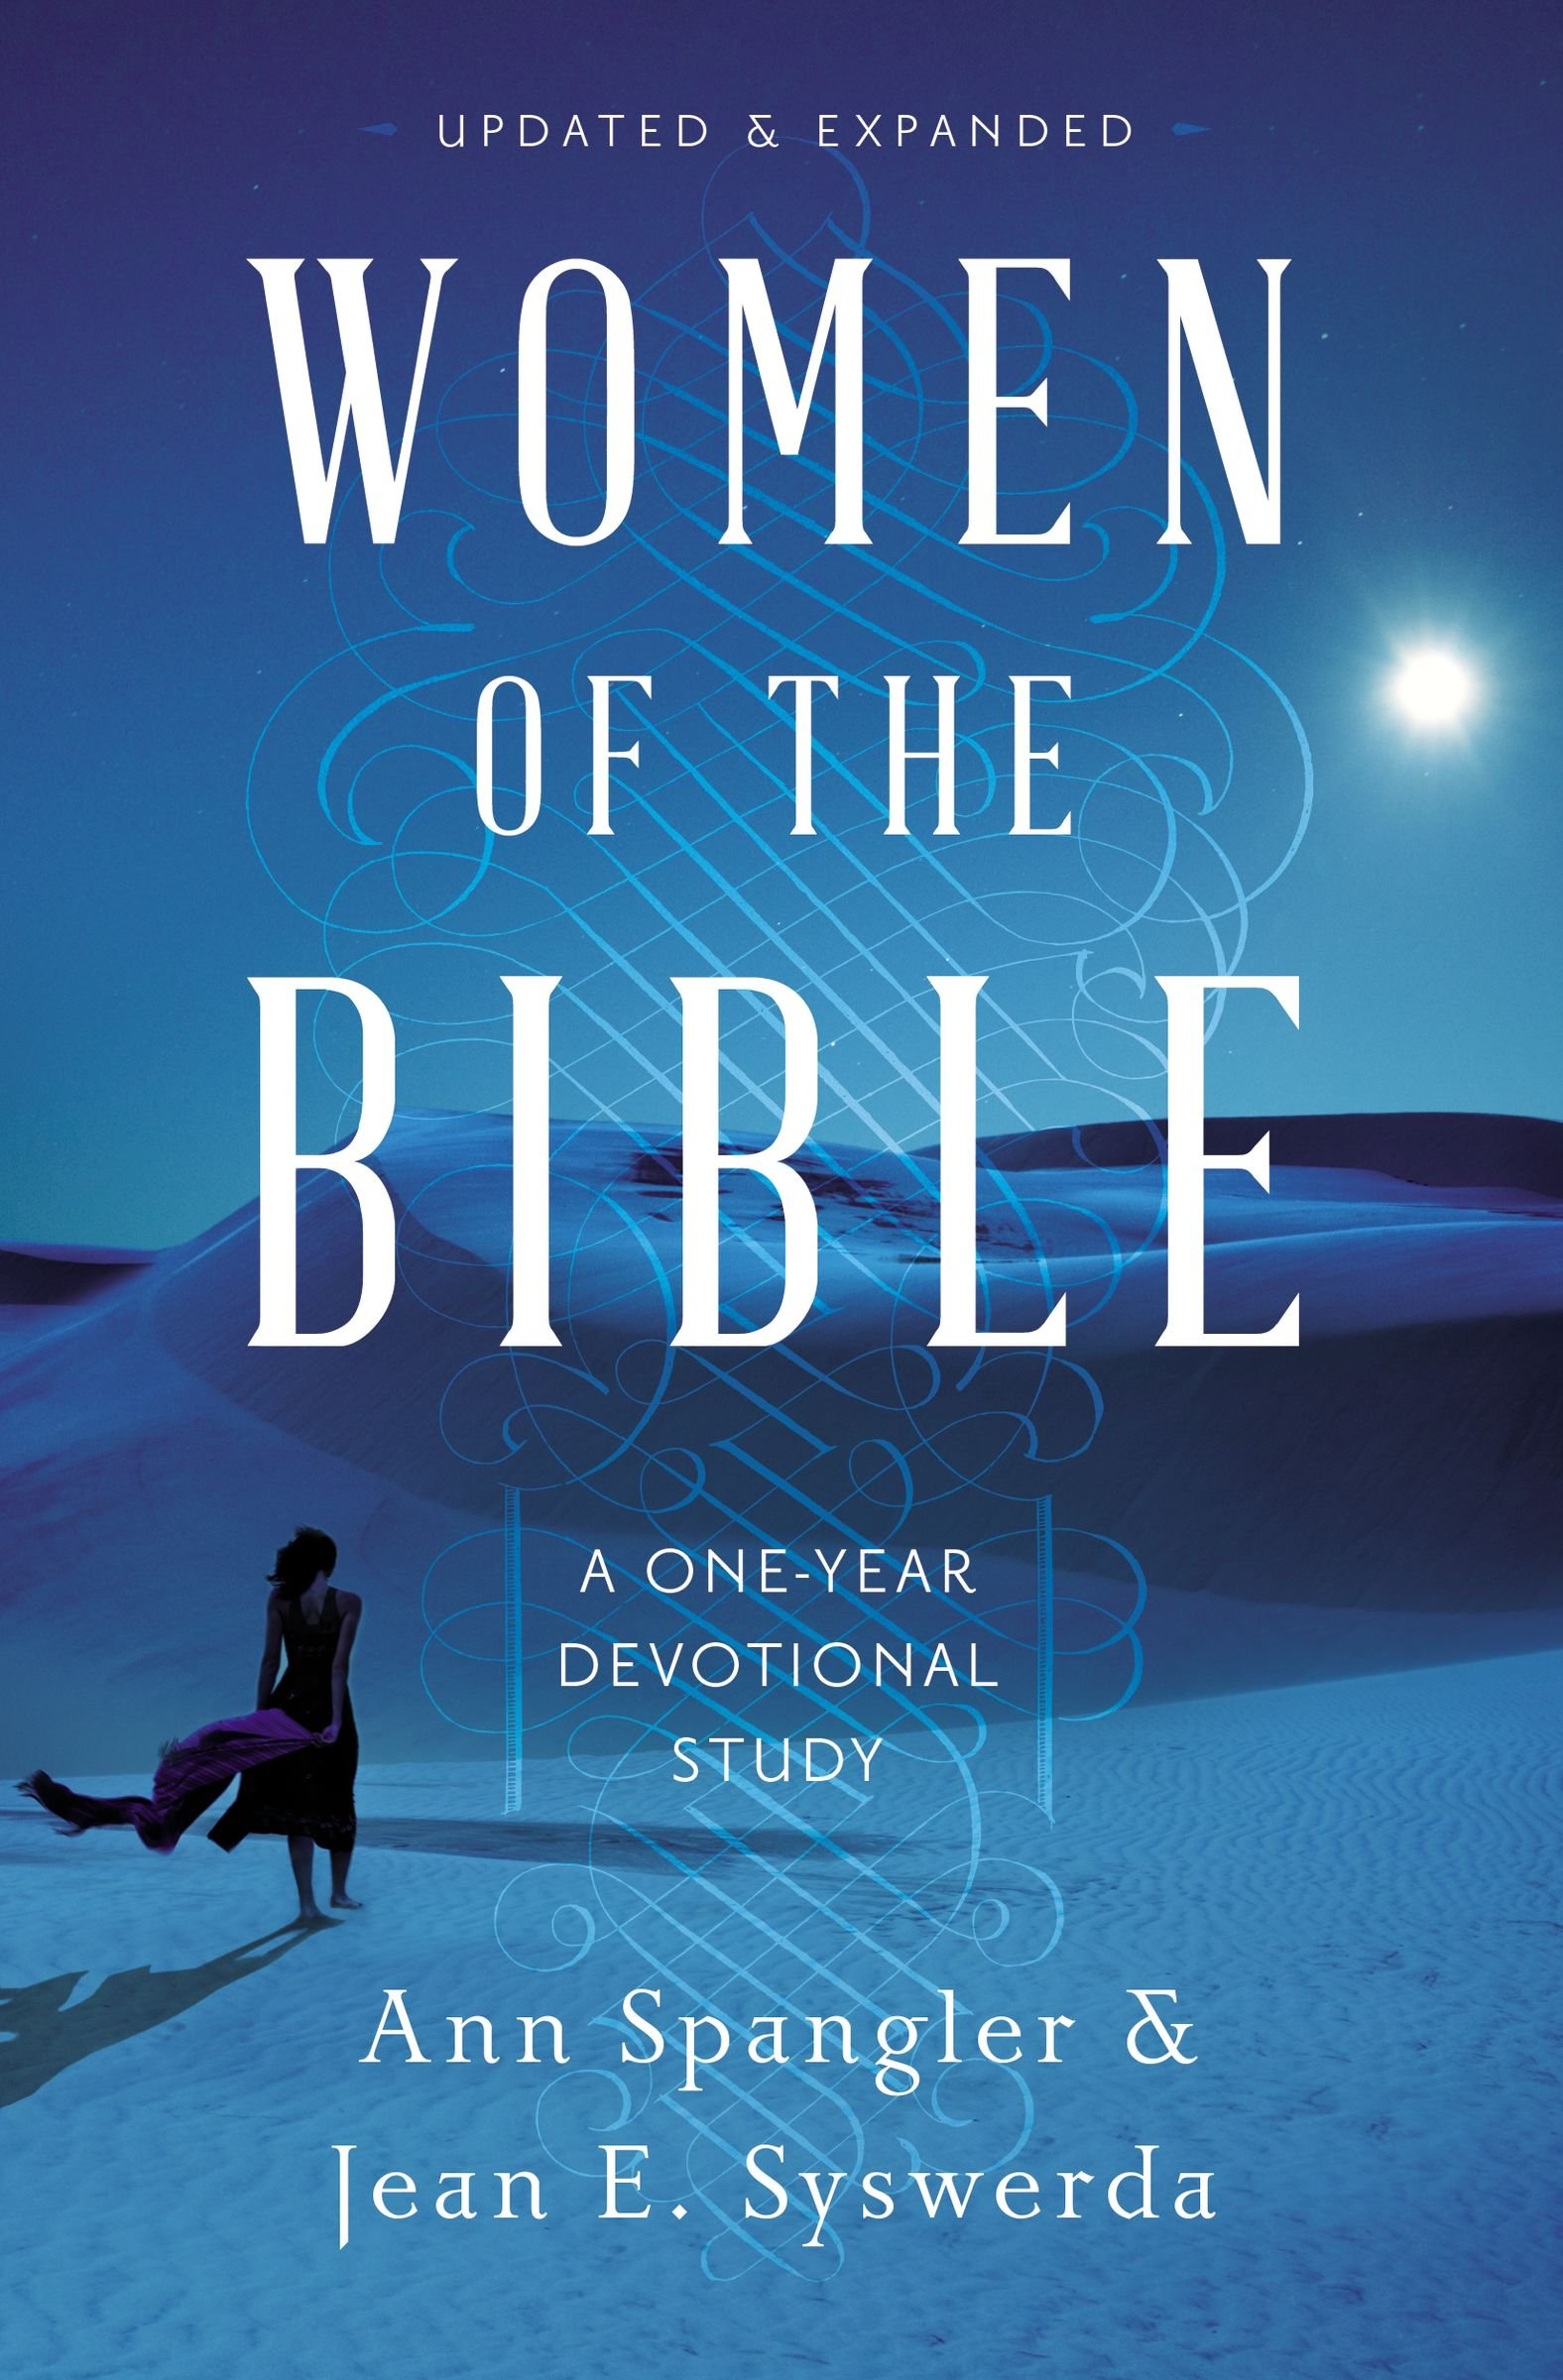 Women Bible One Year Devotional Study product image